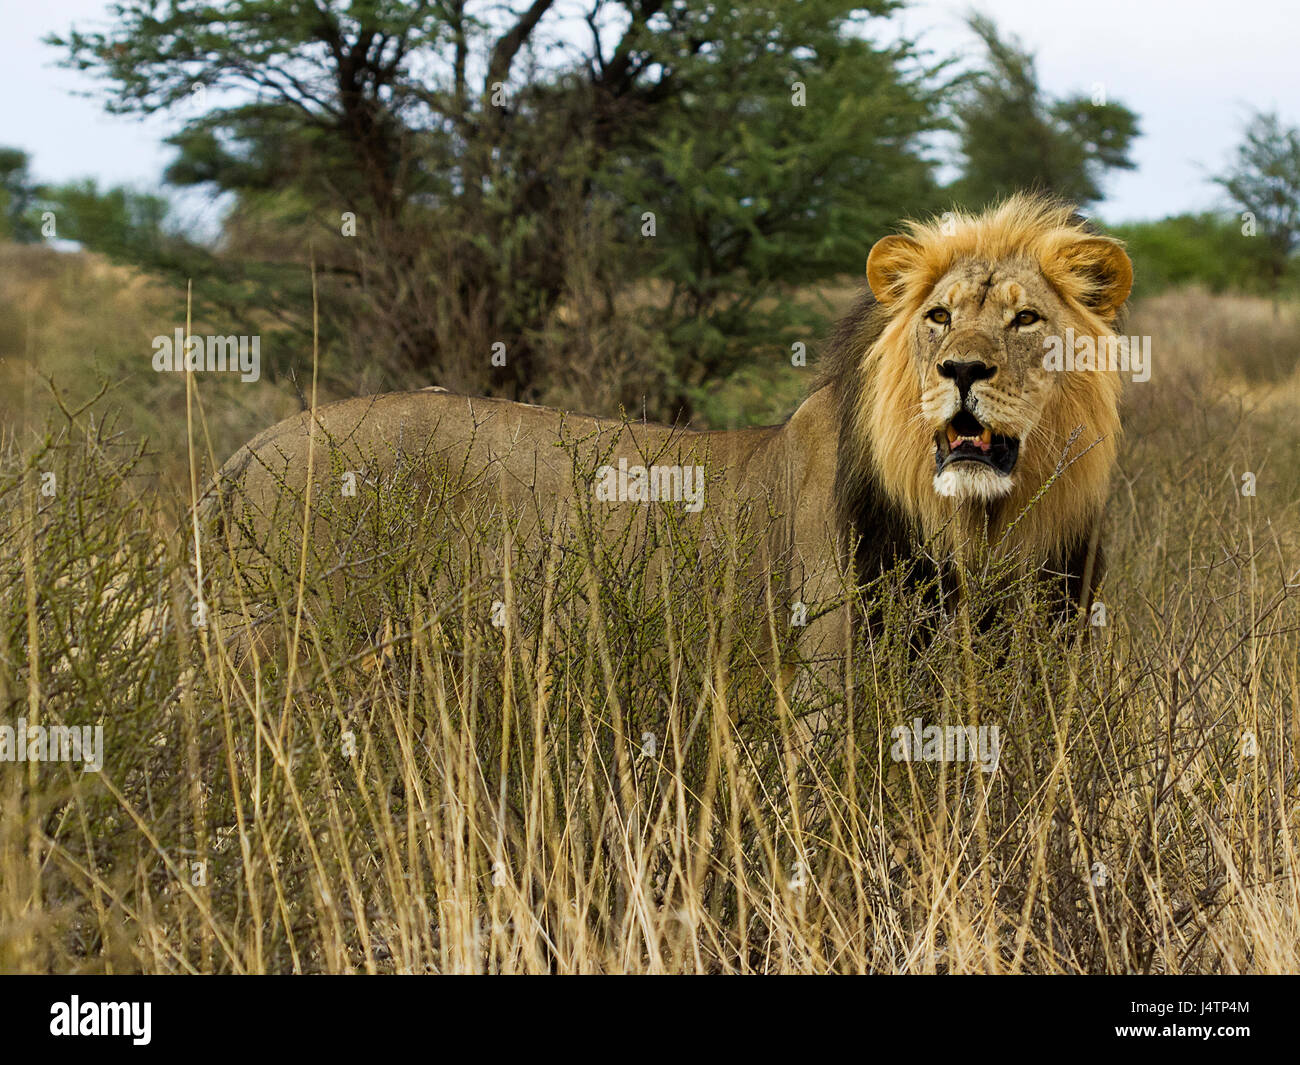 African lion in the Kgalagadi Transfrontier Park, Botswana - Stock Image